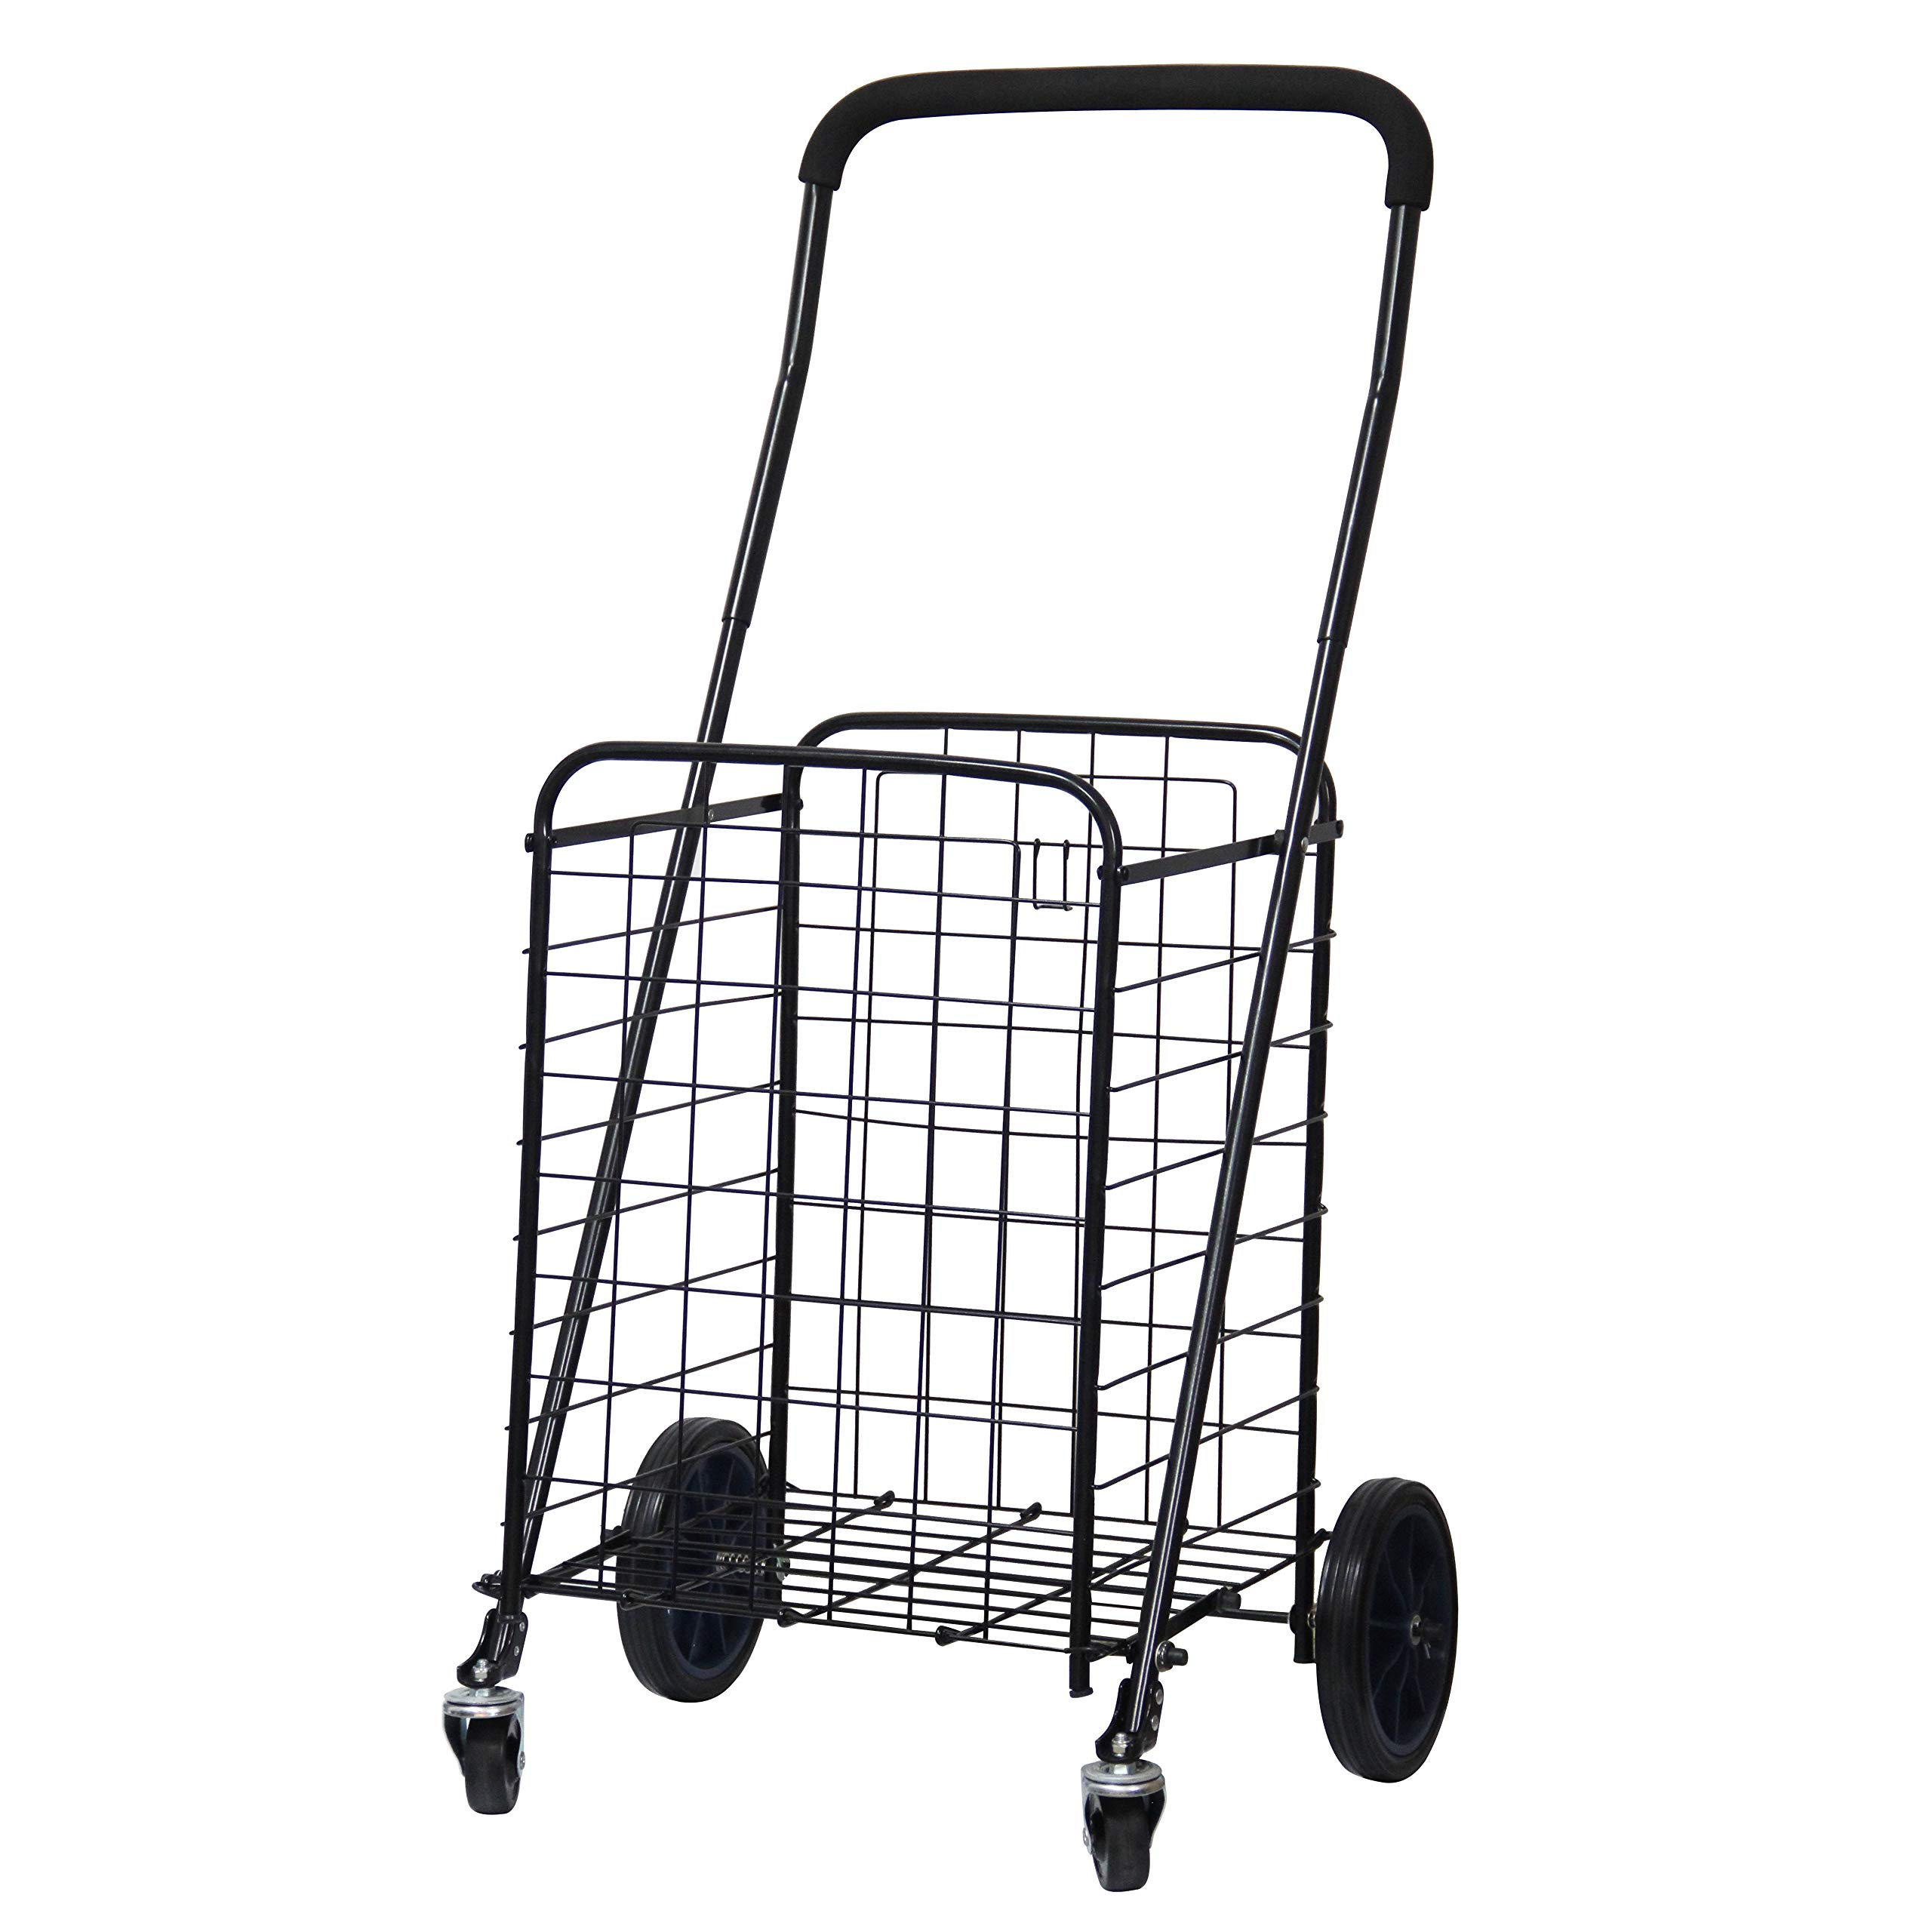 FORUP Utility Shopping Cart with Rolling Swivel Wheels (Black) by FORUP